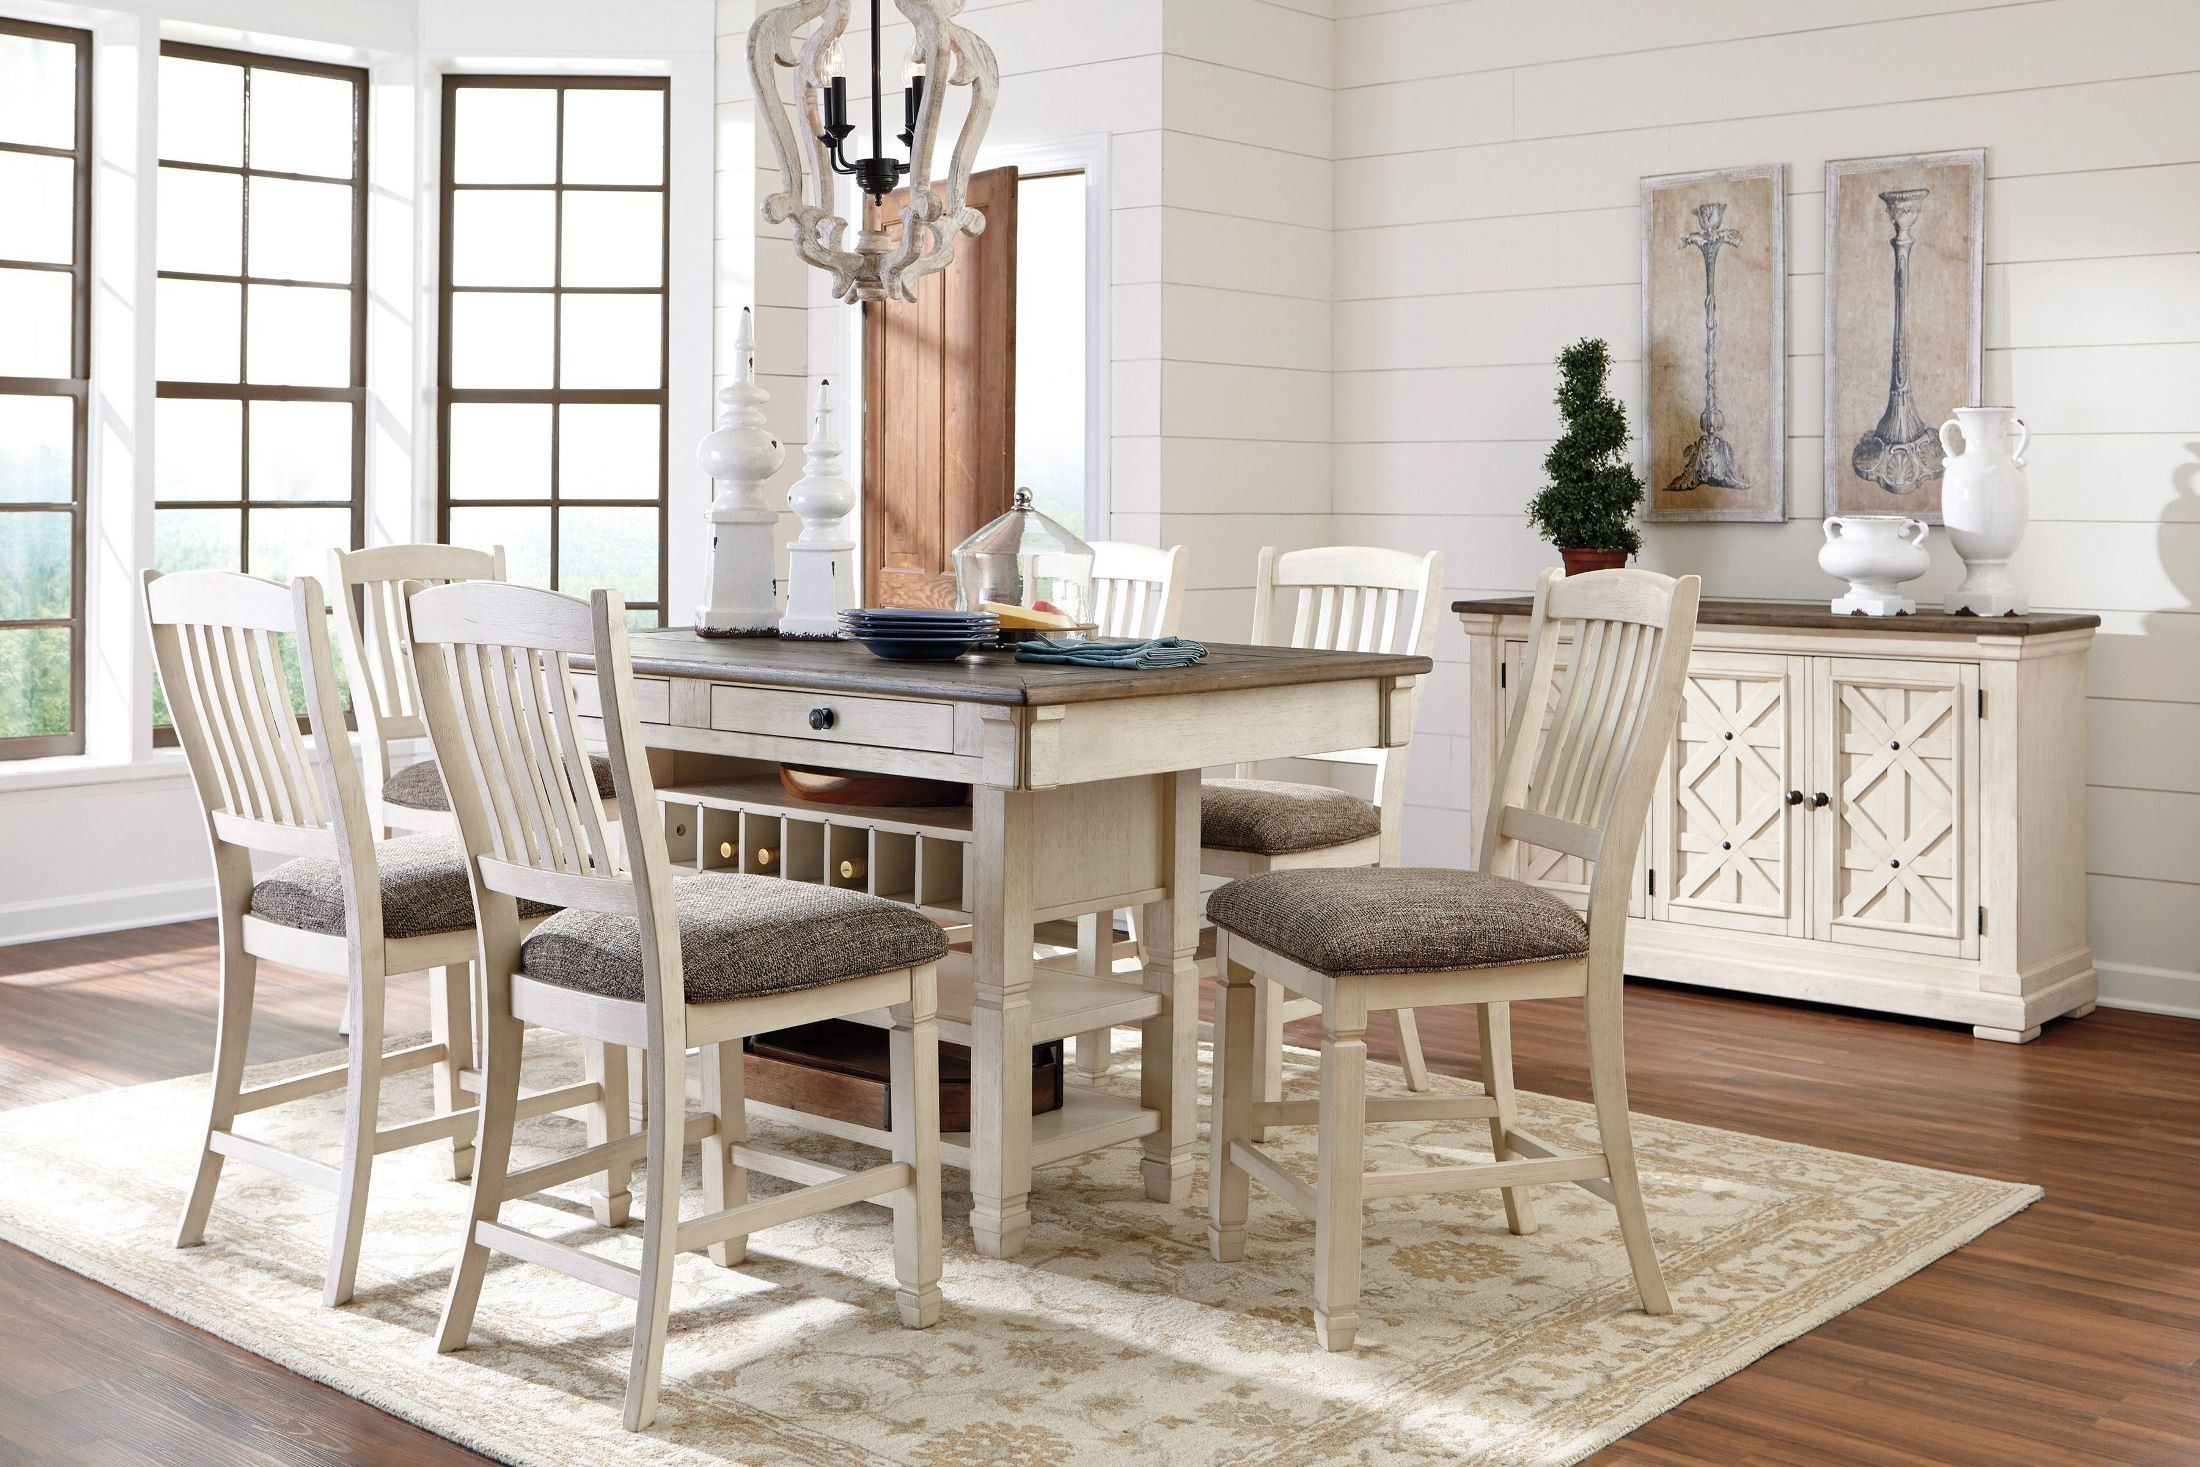 Pin on Counter height dining sets